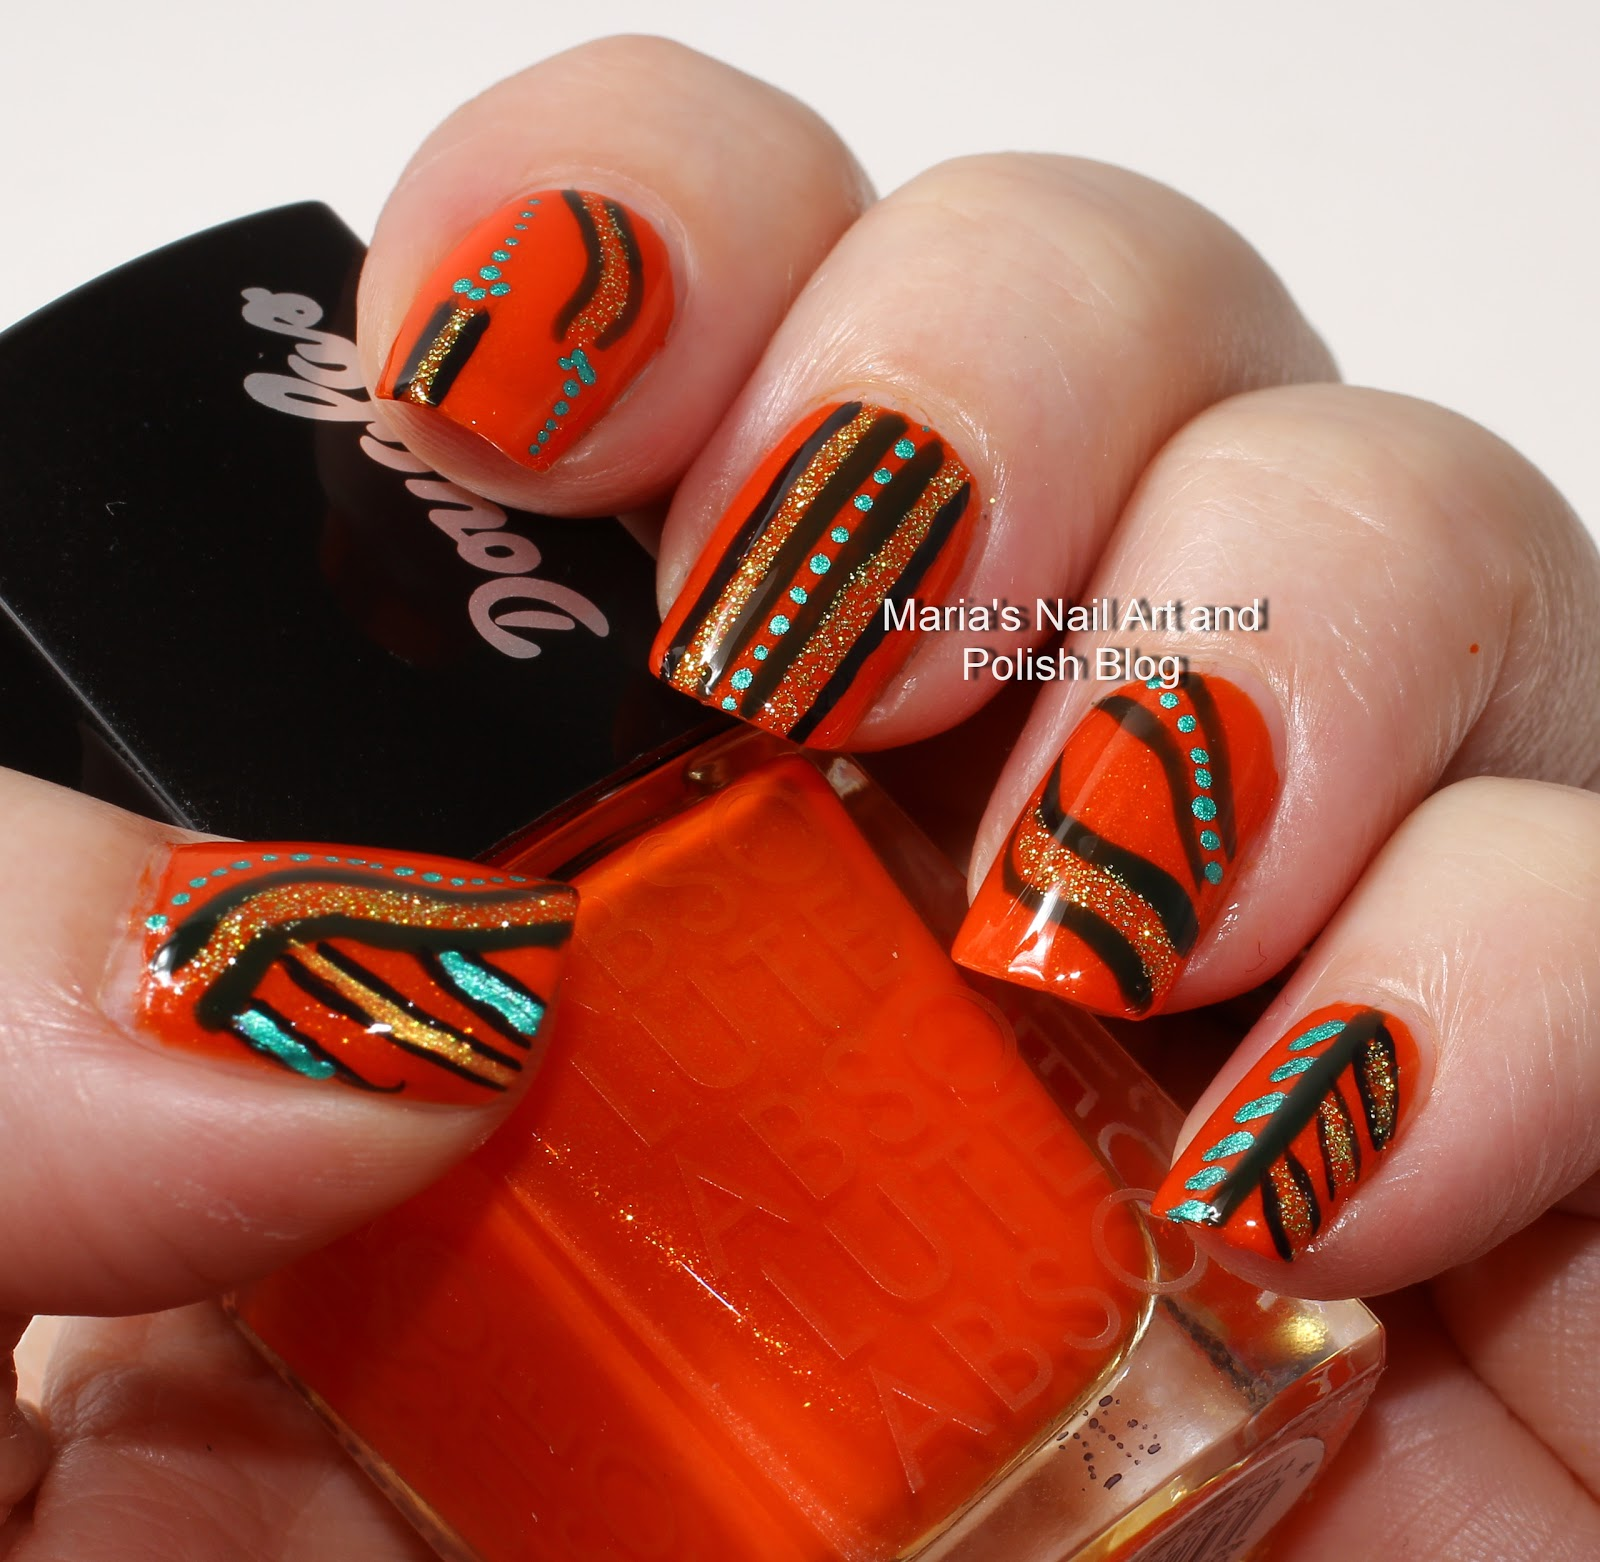 Marias Nail Art And Polish Blog Flushed With Stripes And: Marias Nail Art And Polish Blog: Halloween Abstract